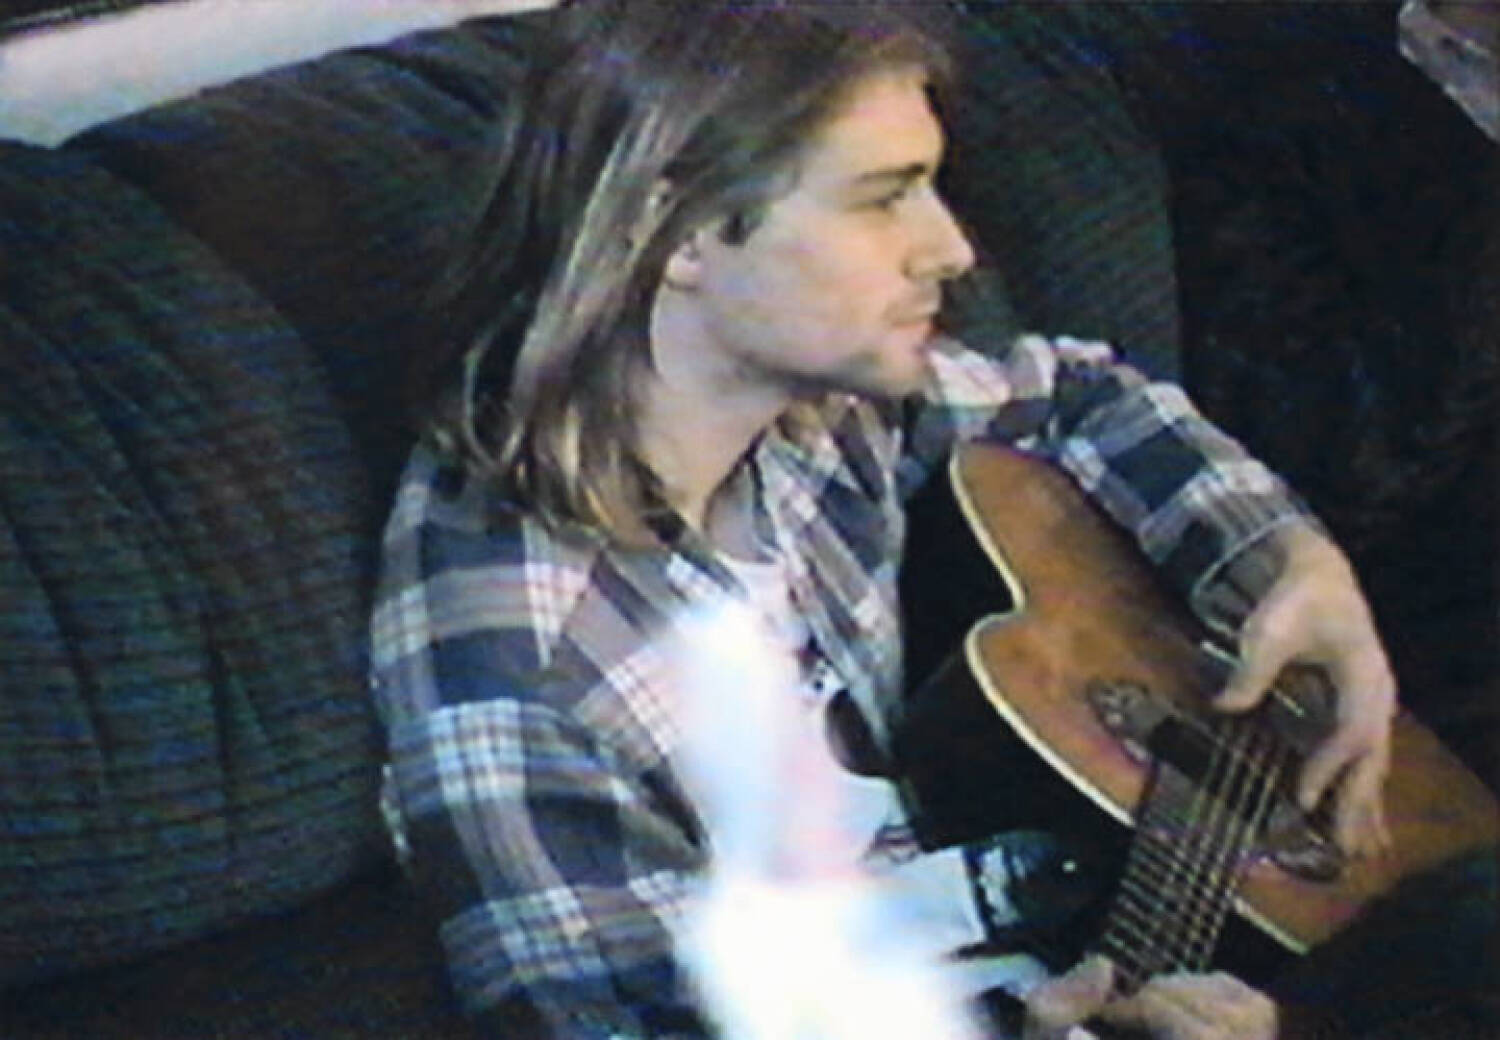 KURT COBAIN EARLY PLAYED ACOUSTIC GUITAR - Current price: $0